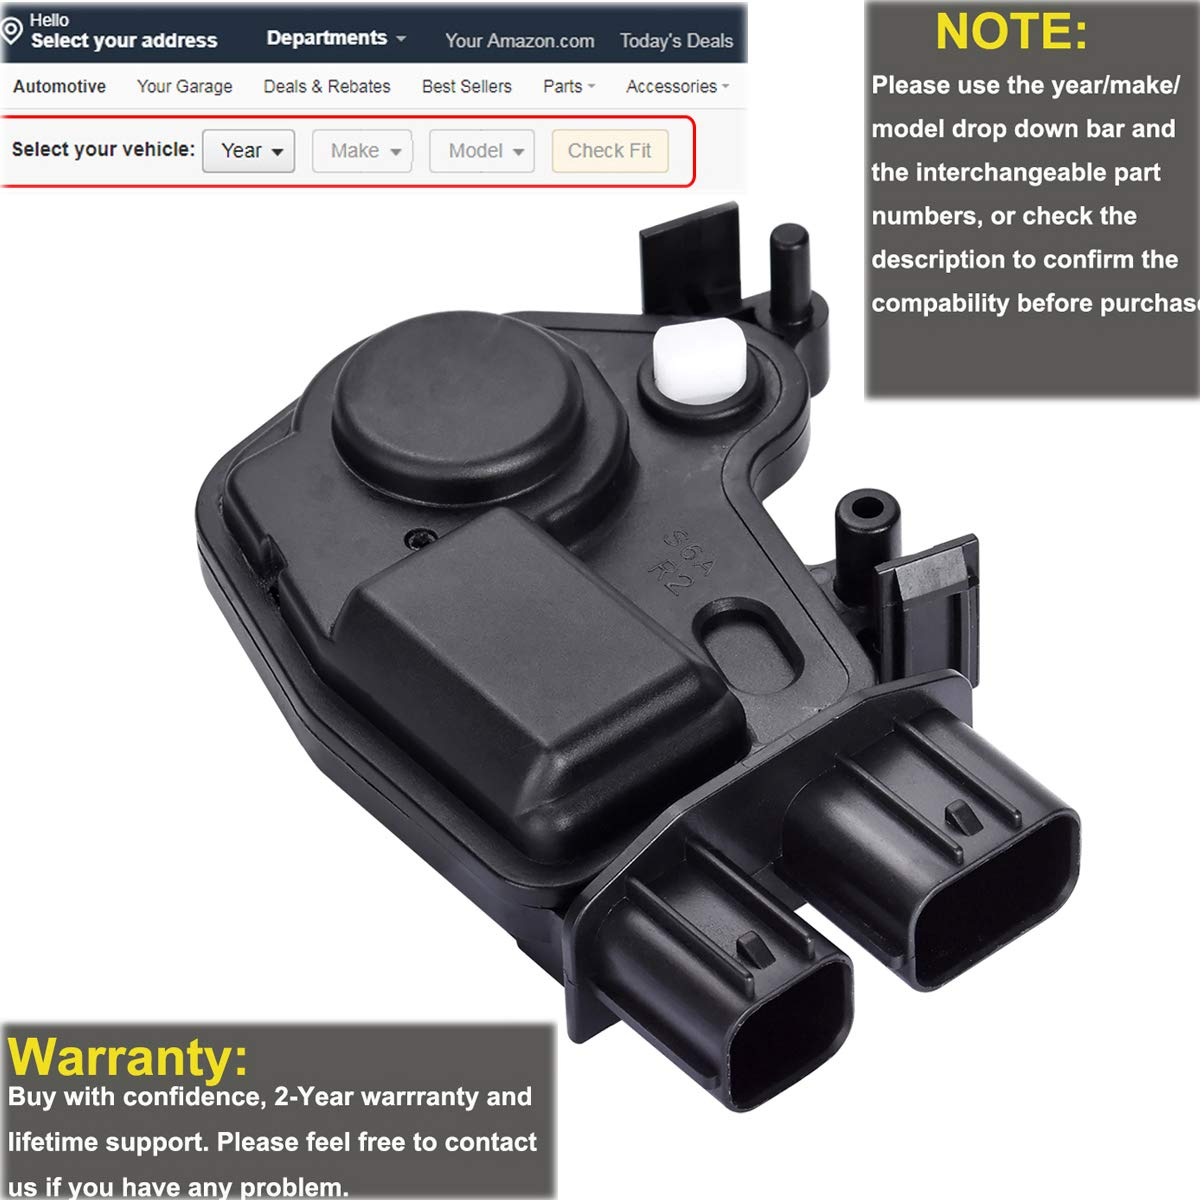 FAERSI Door Lock Actuator Front Right for Honda 2005-2010 Odyssey /& 2003-2008 Pilot /& 2001-2005 Civic /& 2003-2007 Accord Acura RSX 2002 2003 2004 2005 2006 Replaces #72115-S6A-J01 72115-S6A-J11